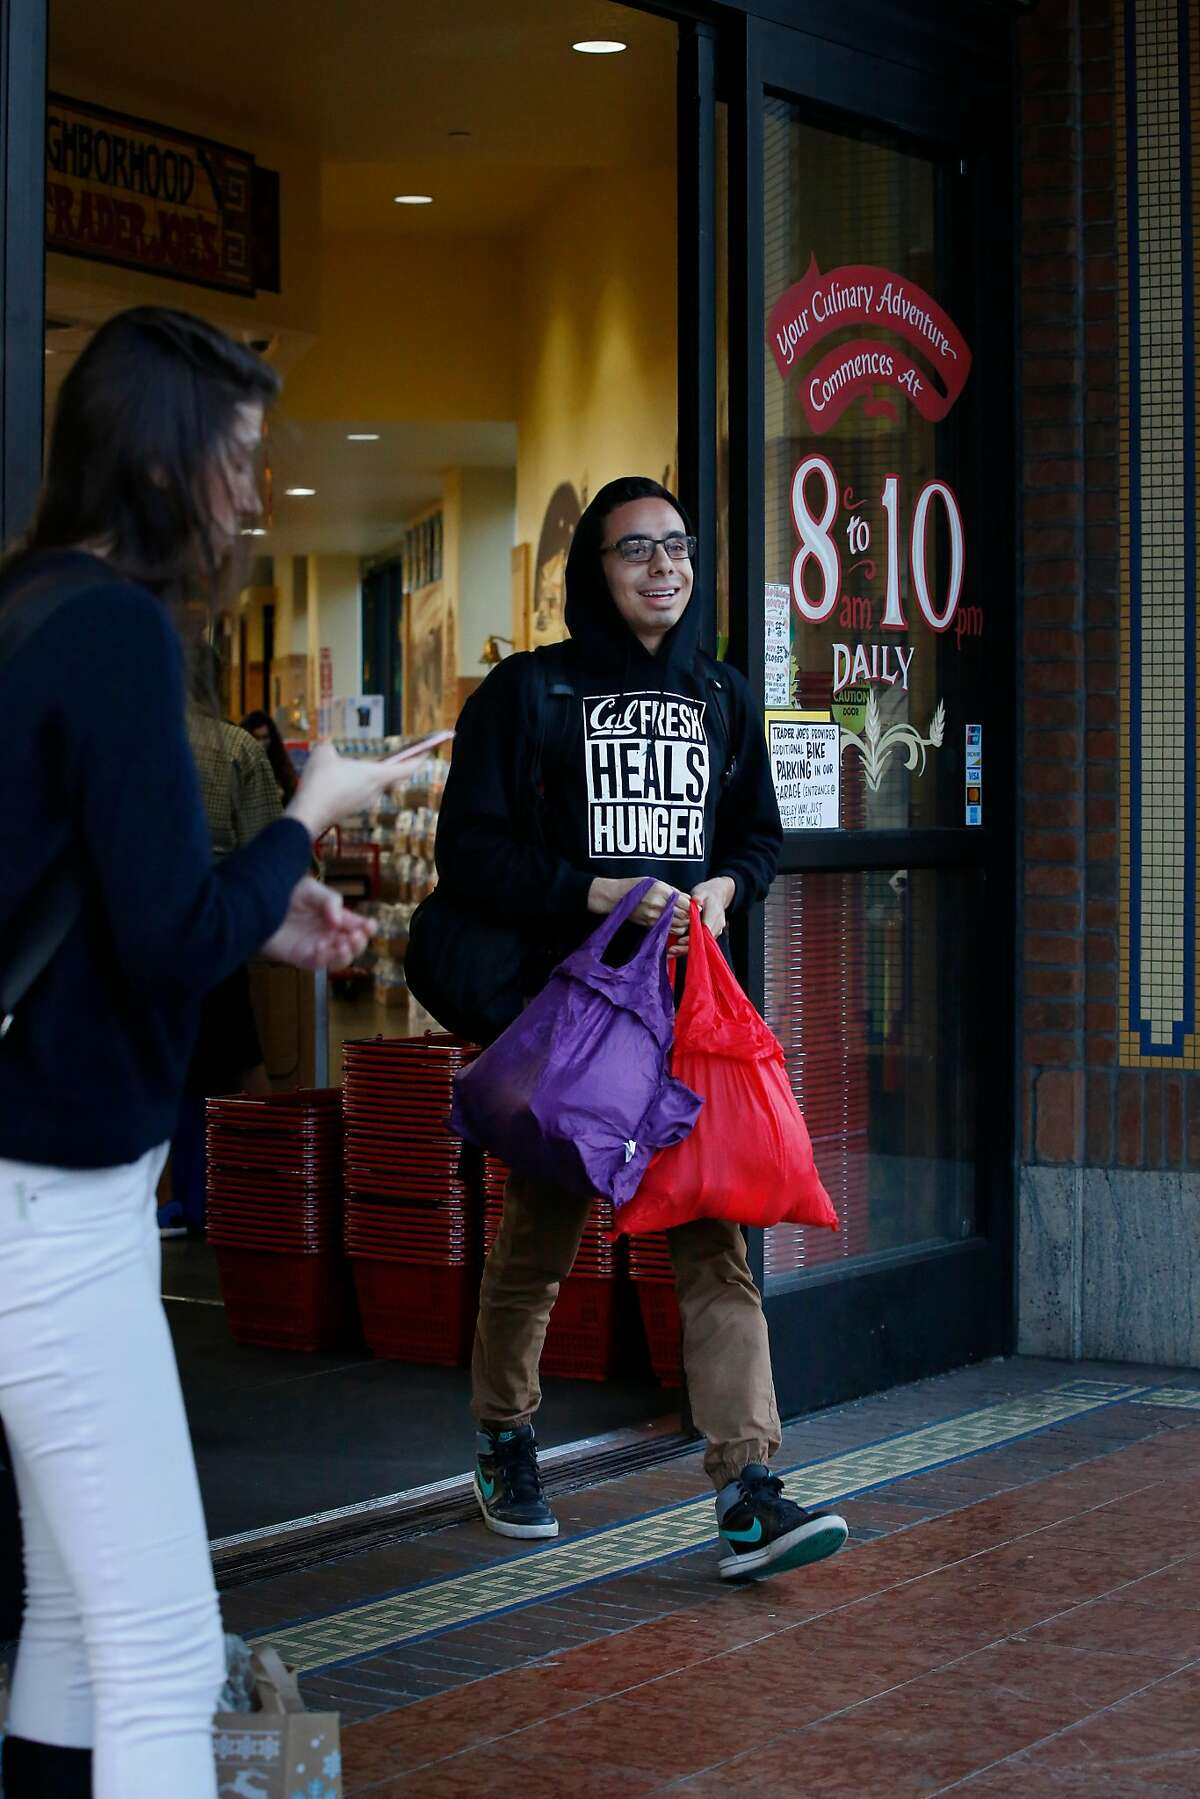 Esteban Vasquez, UC Berkeley senior, carries groceries from a market after shopping on Wednesday, November 15, 2017 in Berkley, Calif. Vasquez is able to use CalFresh to buy some of his groceries.